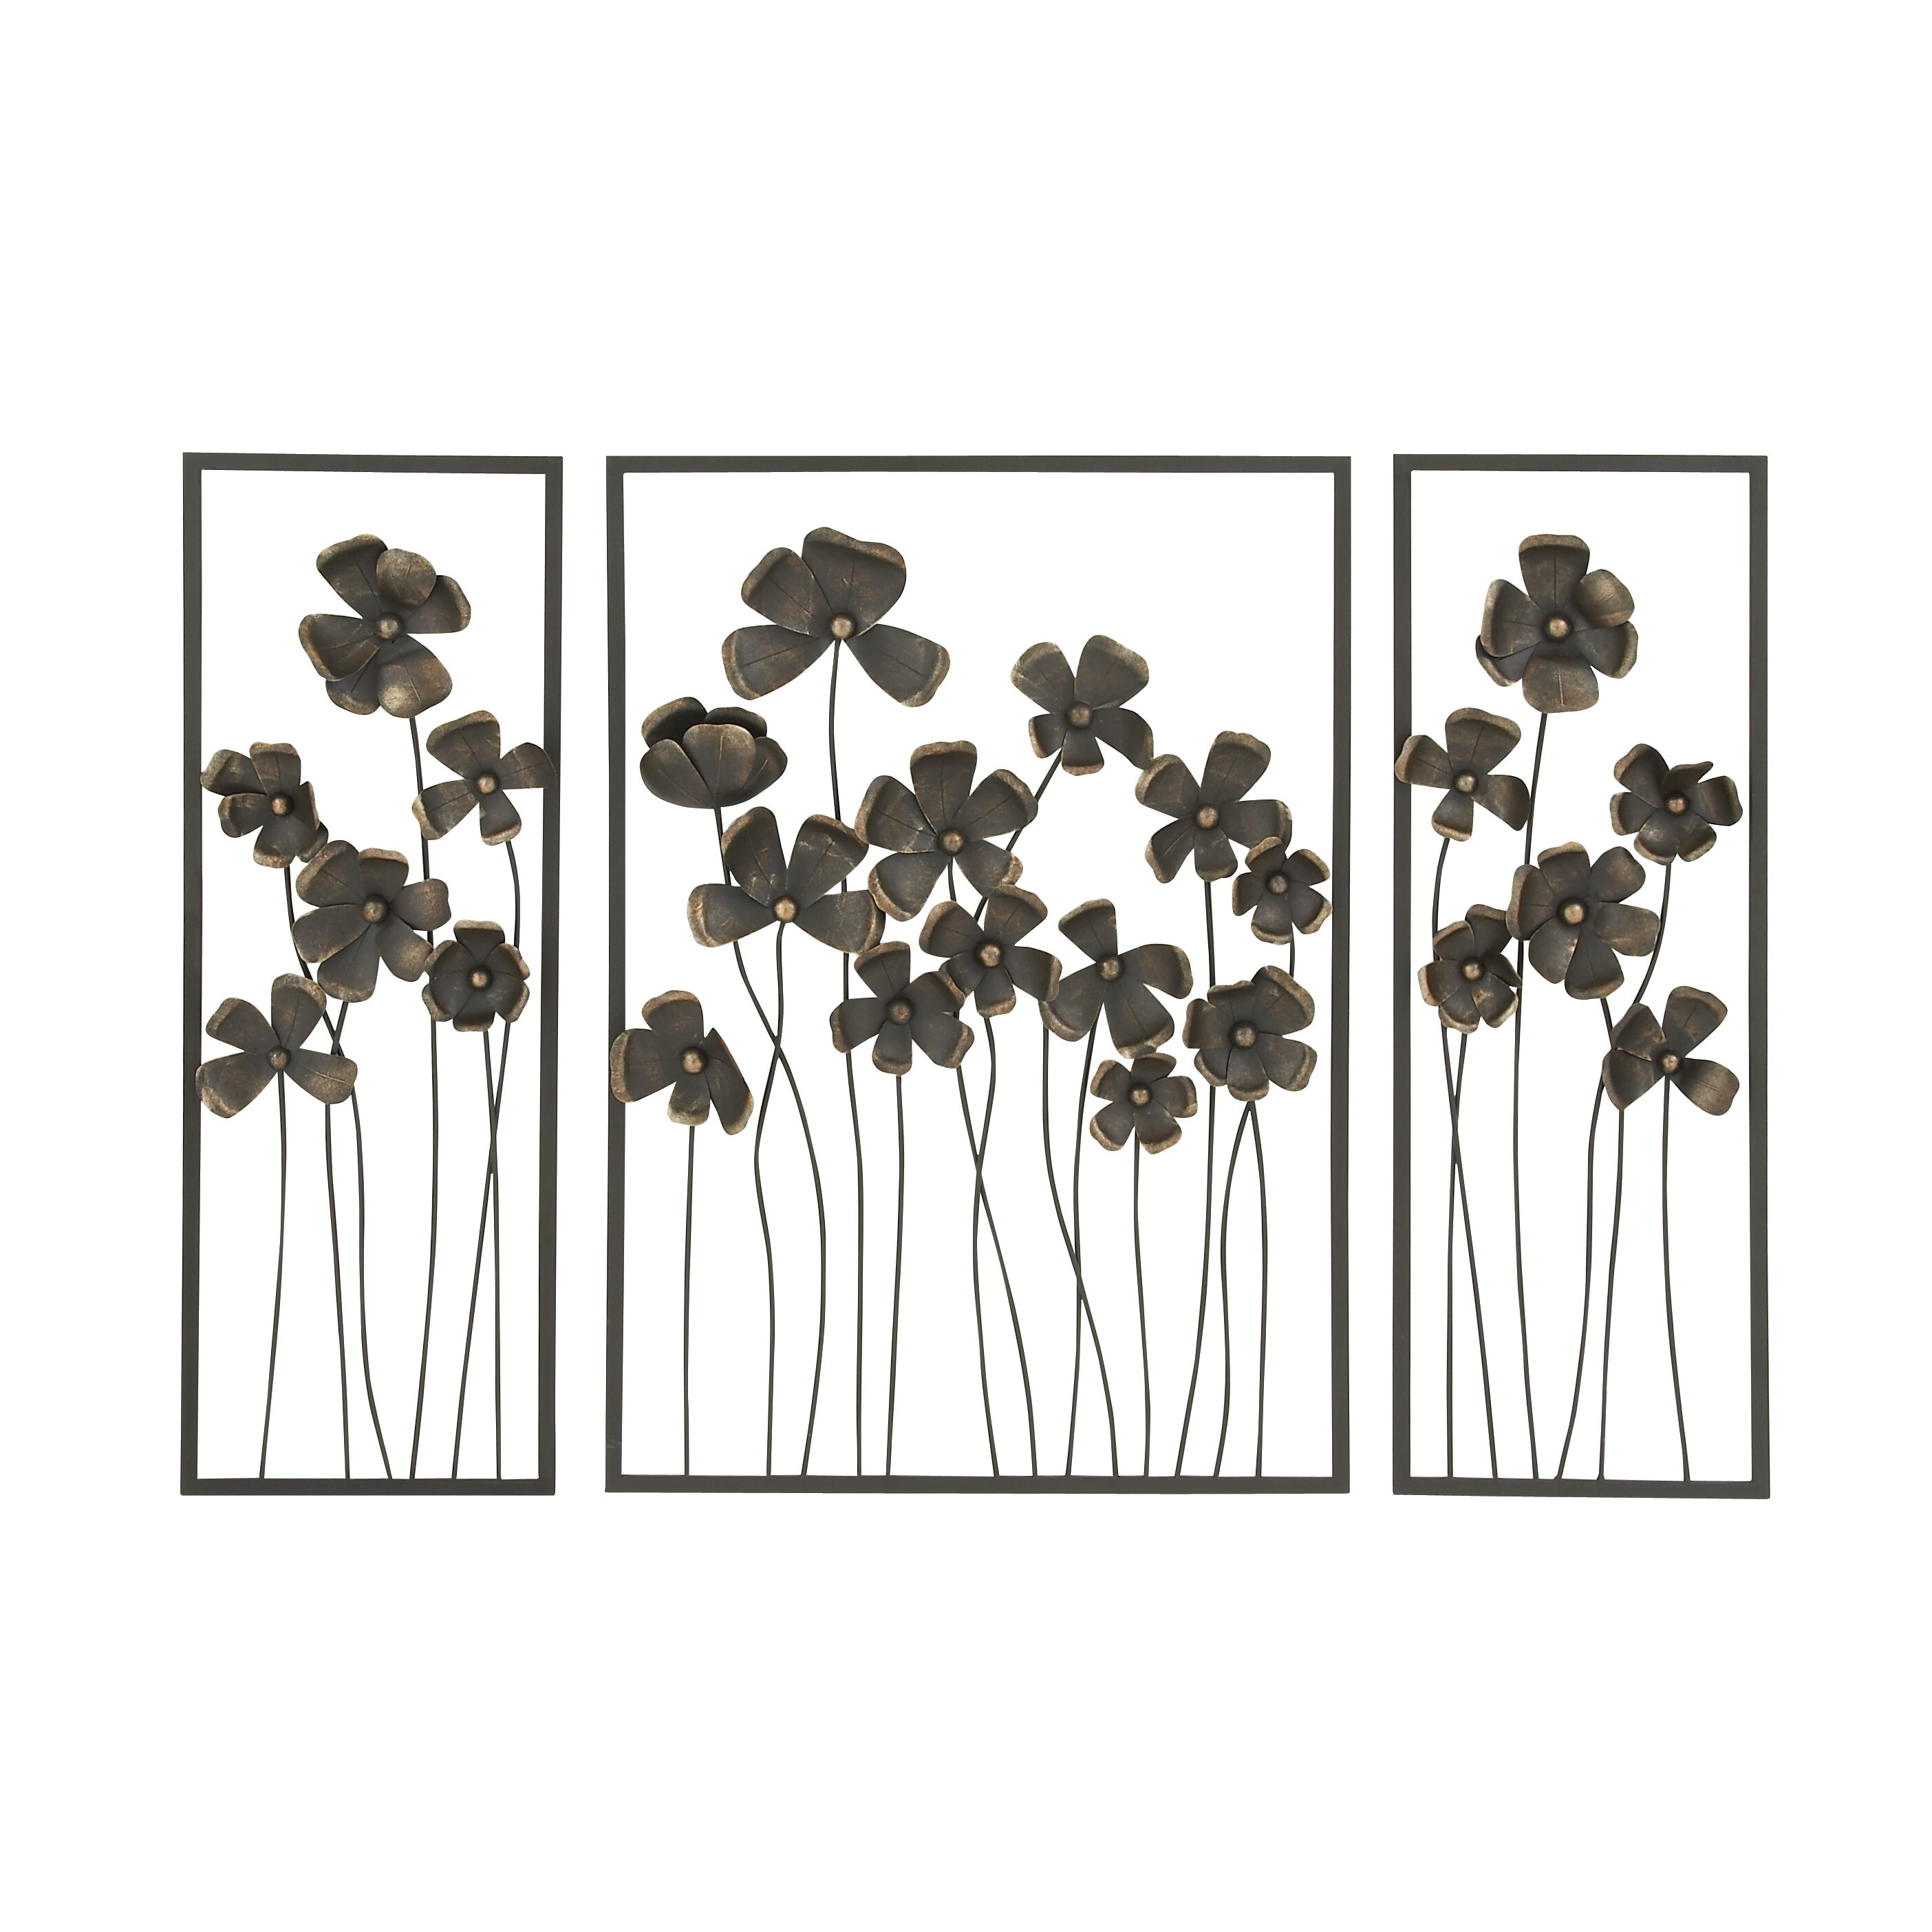 Wall Decor Sets Of 3 : Darby home co piece wall d?cor set reviews wayfair